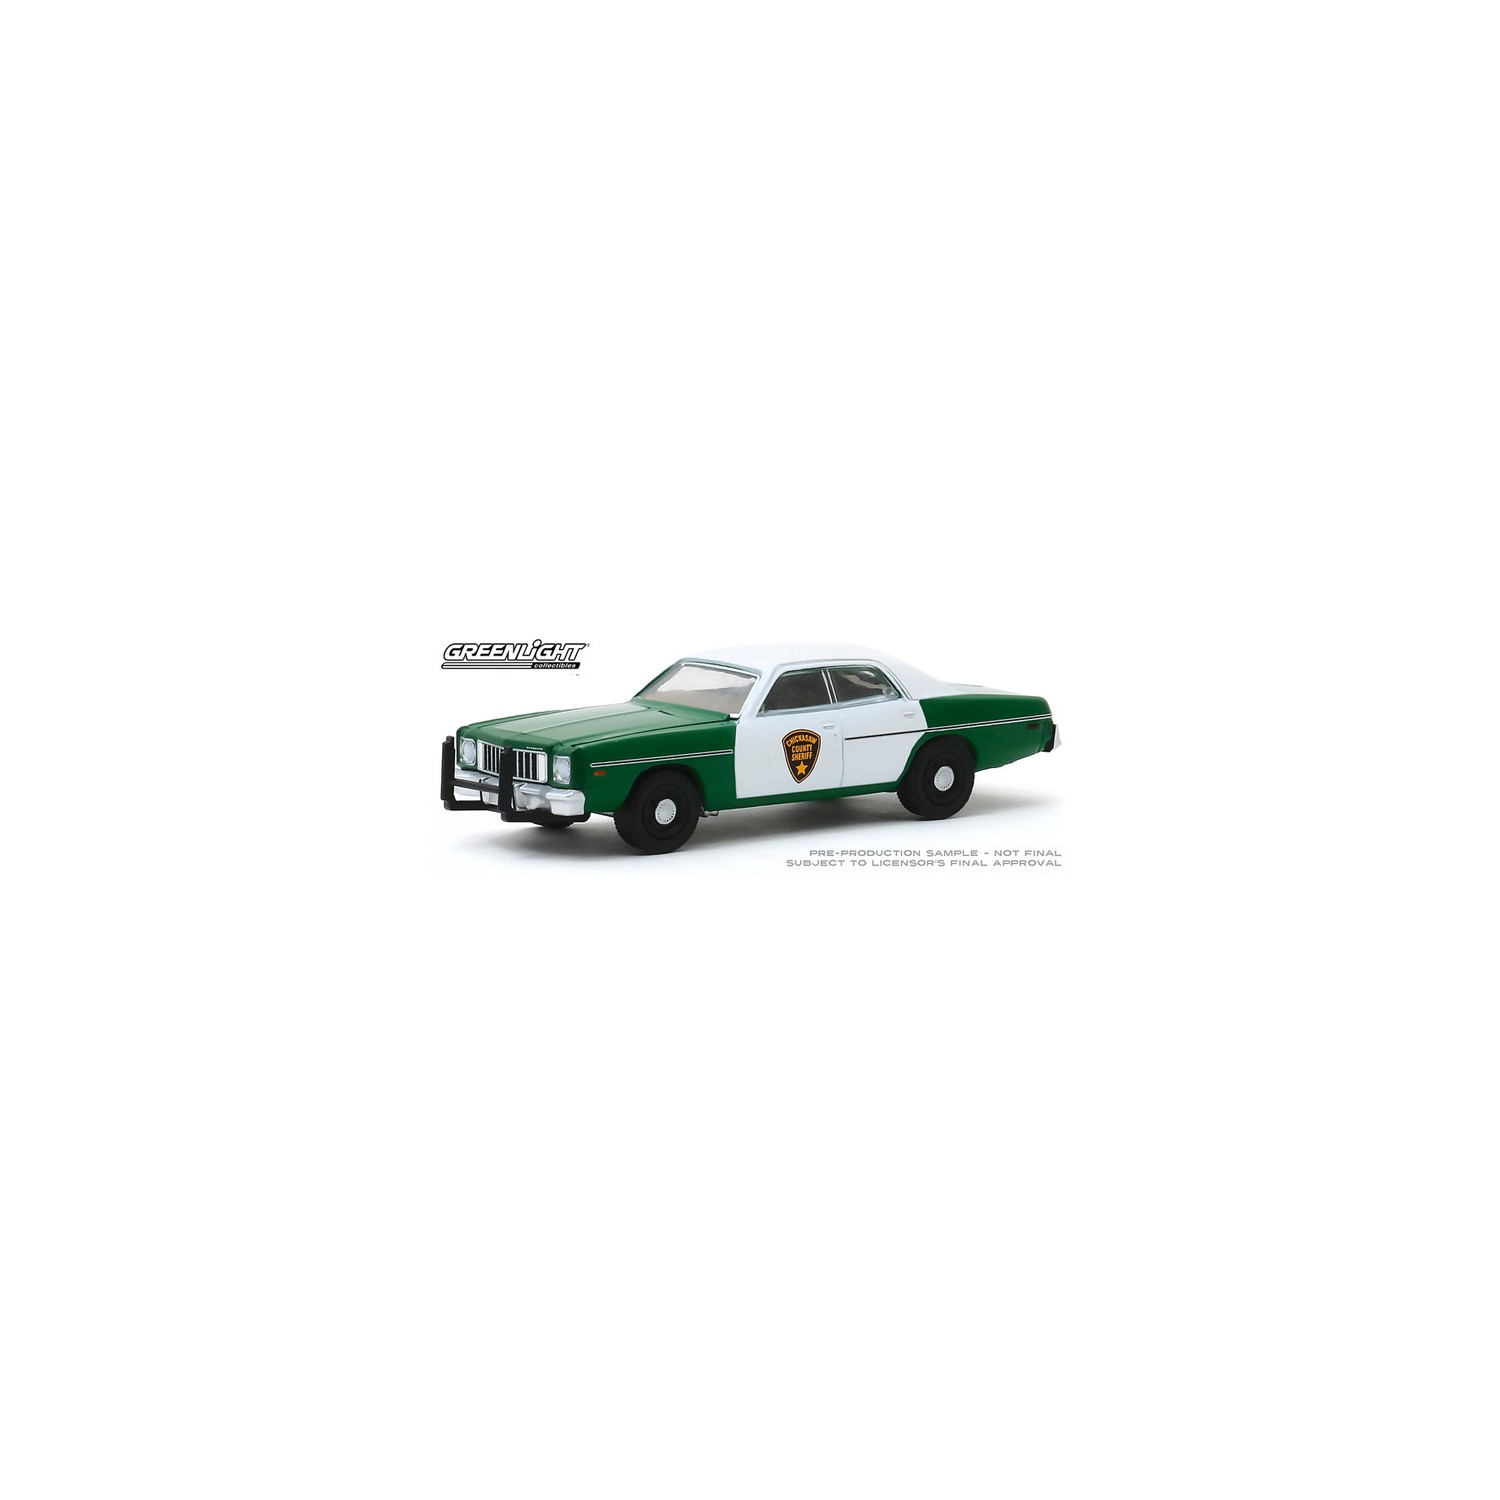 1975 Plymouth Fury Chickasaw County Sheriff Police ** Greenlight Hobby 1:64